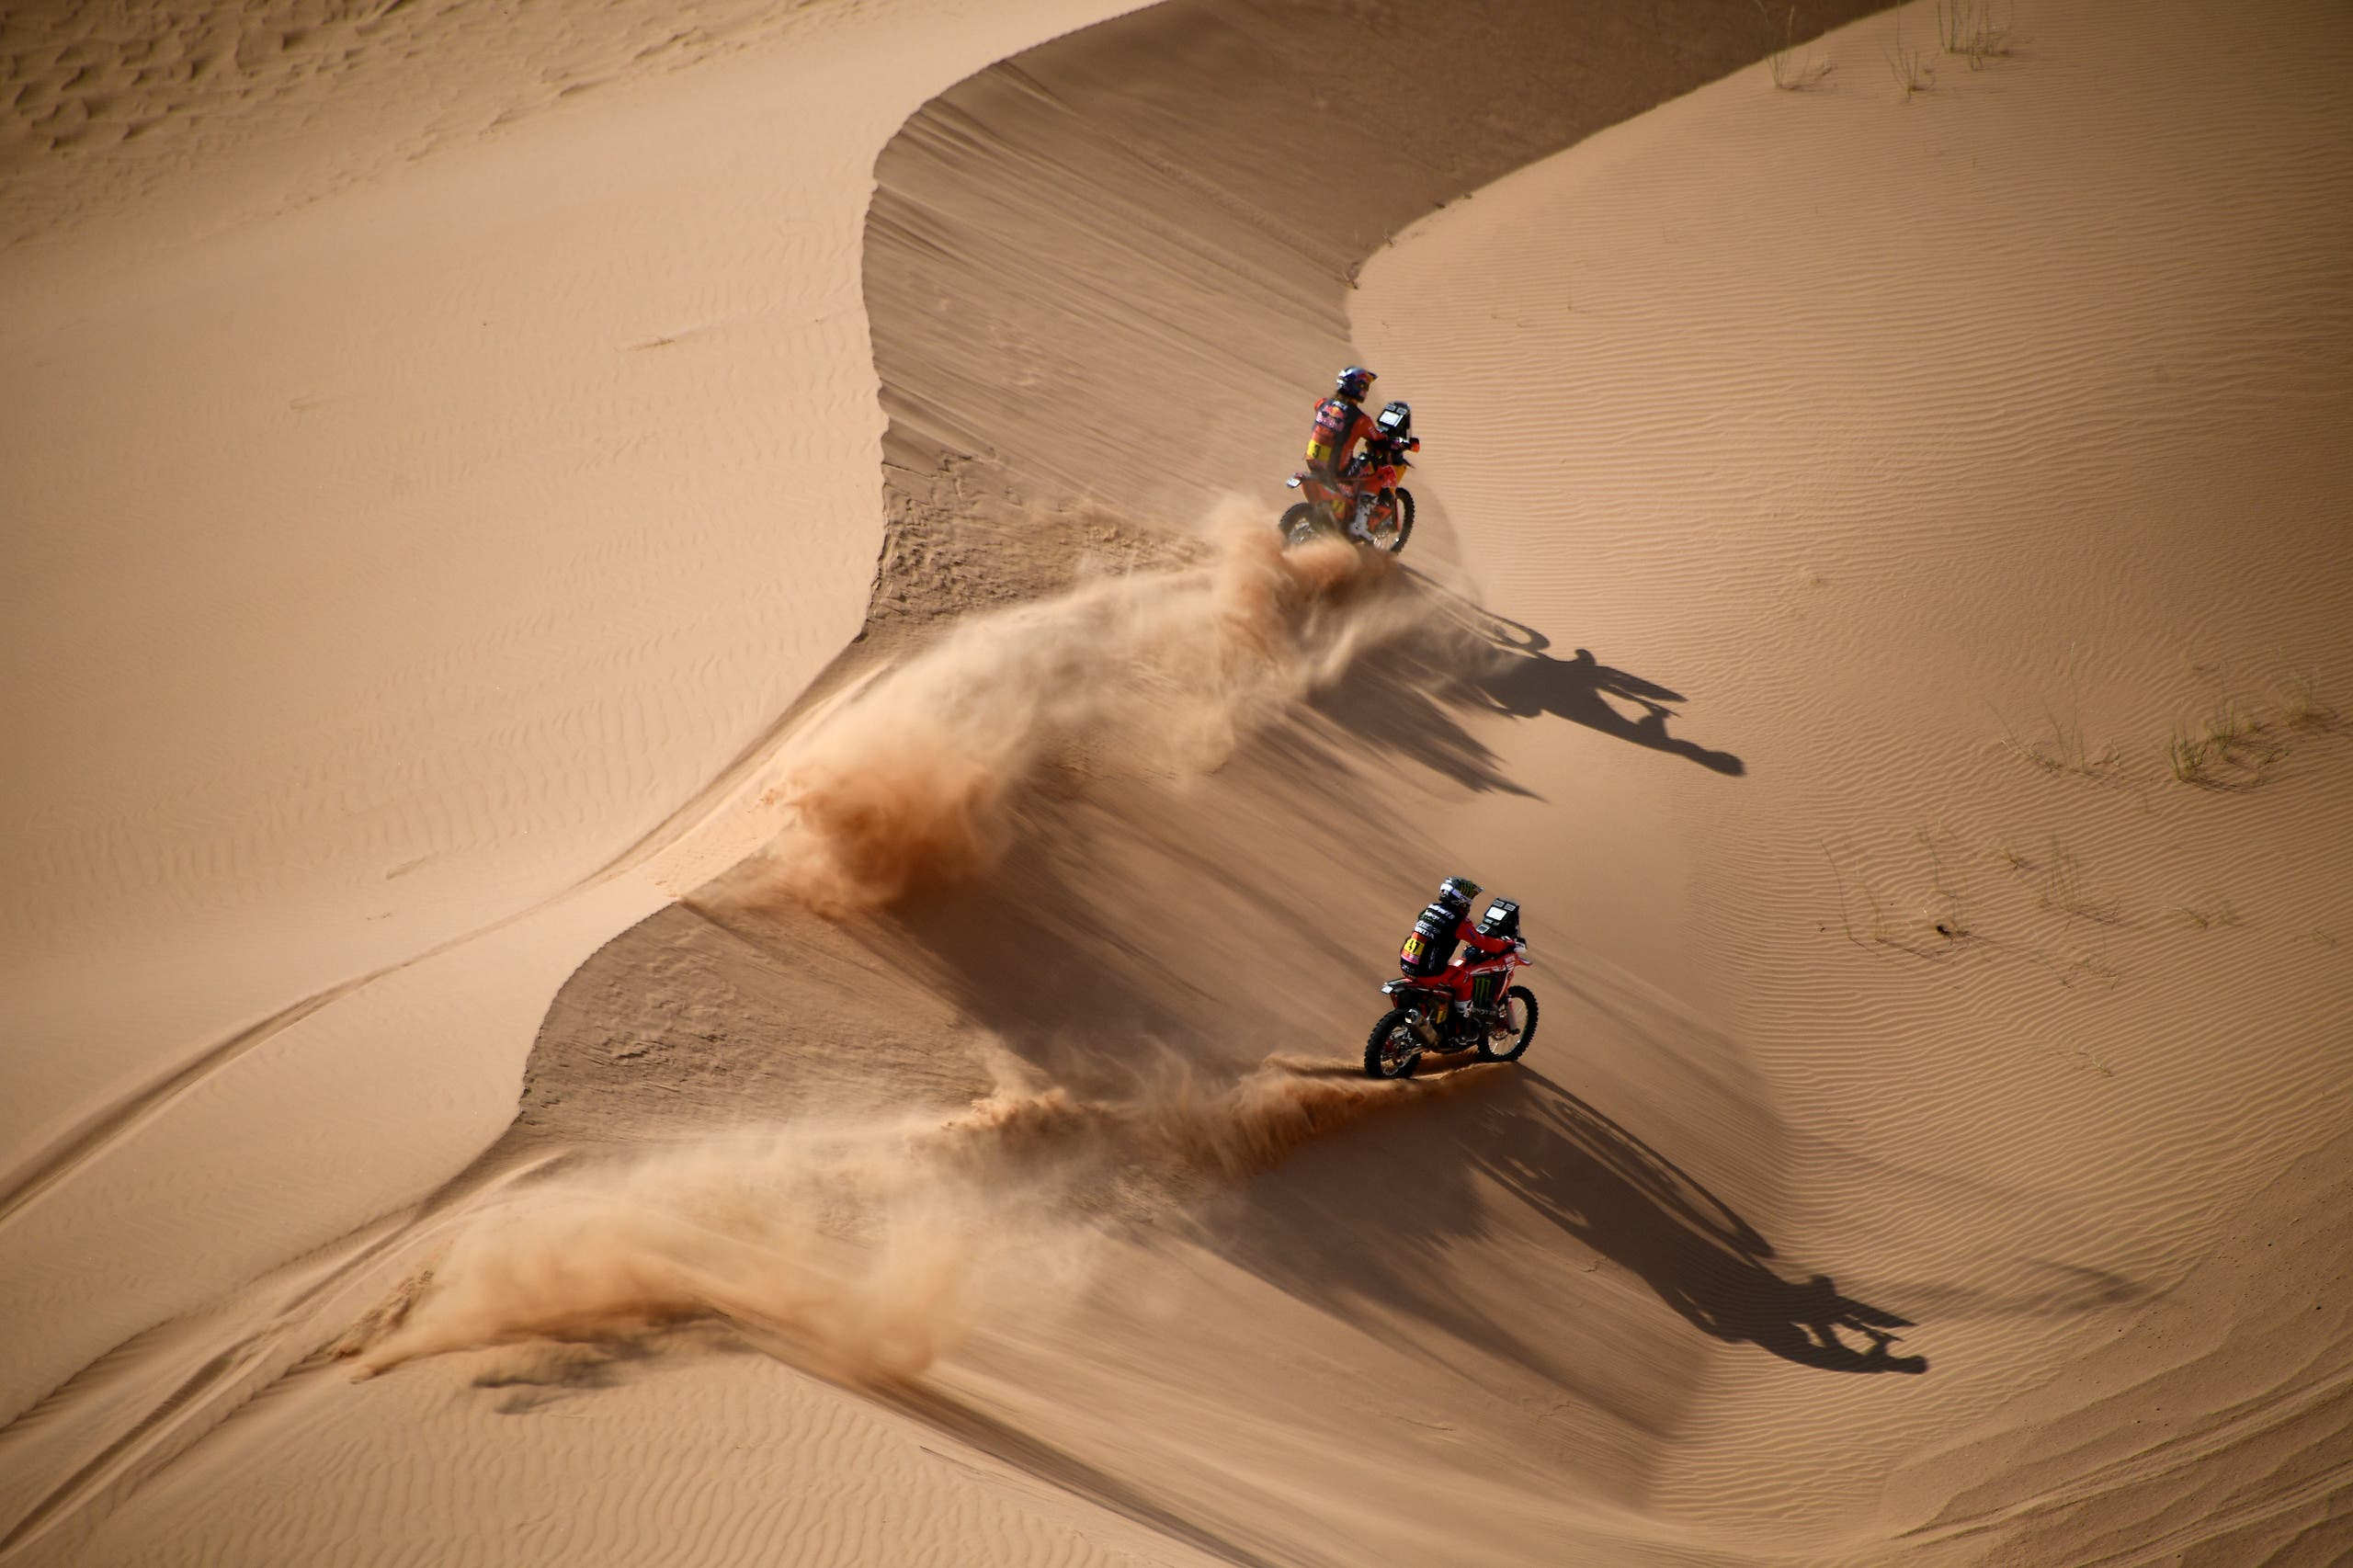 Australian biker Toby Price (top) and Argentinian biker Kevin Benavides compete during Stage 4 of the Dakar Rally 2021 between Wadi Ad-Dawasir and Saudi Arabia's capital Riyadh, on January 6, 2021. (AFP)